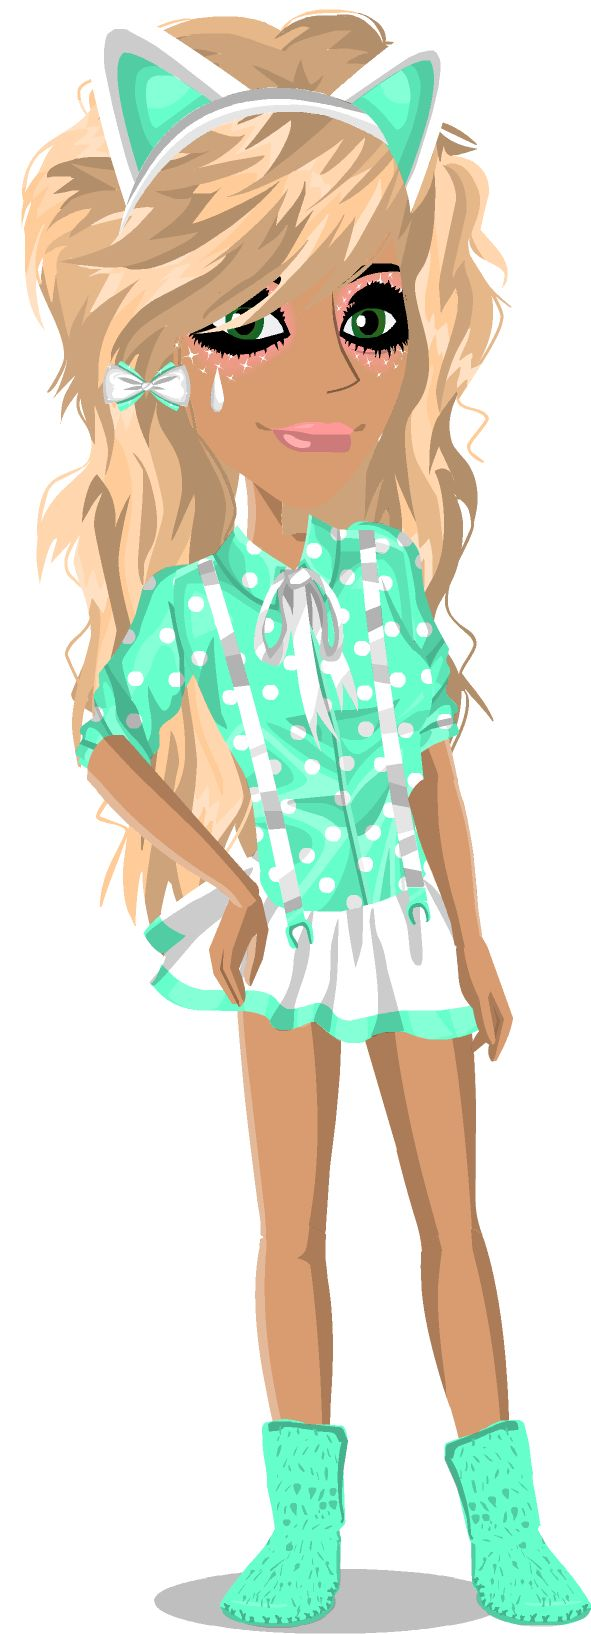 Le look msp turquoise coquet!